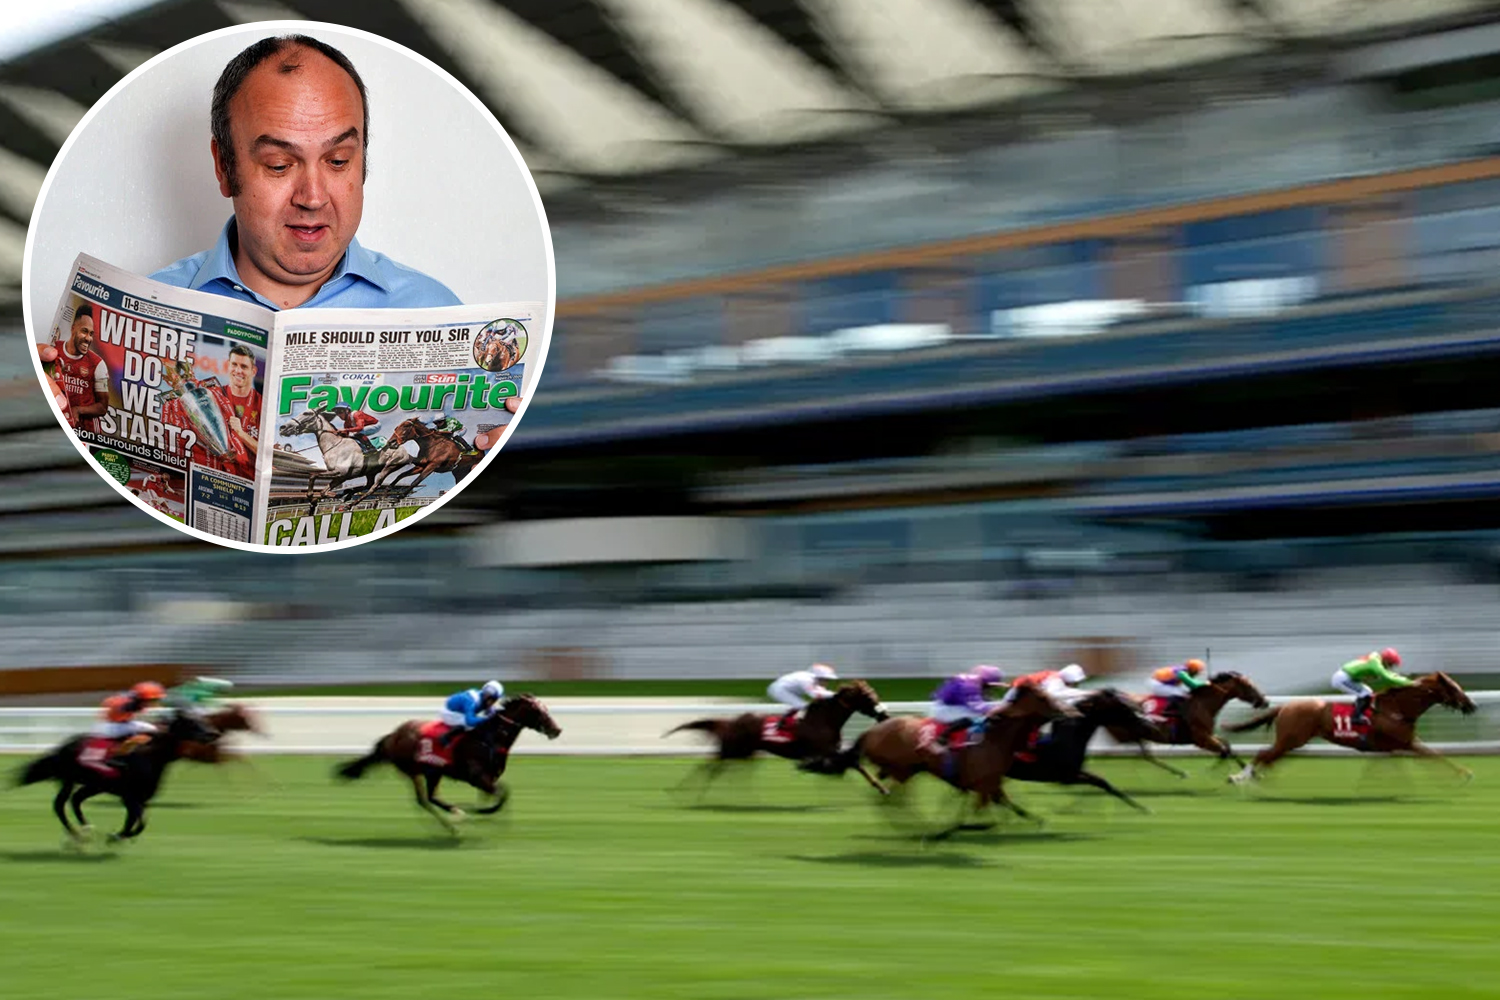 Today's horse racing tips: Templegate's NAP and best bets for the live ITV racing at Ascot on British Champions Day